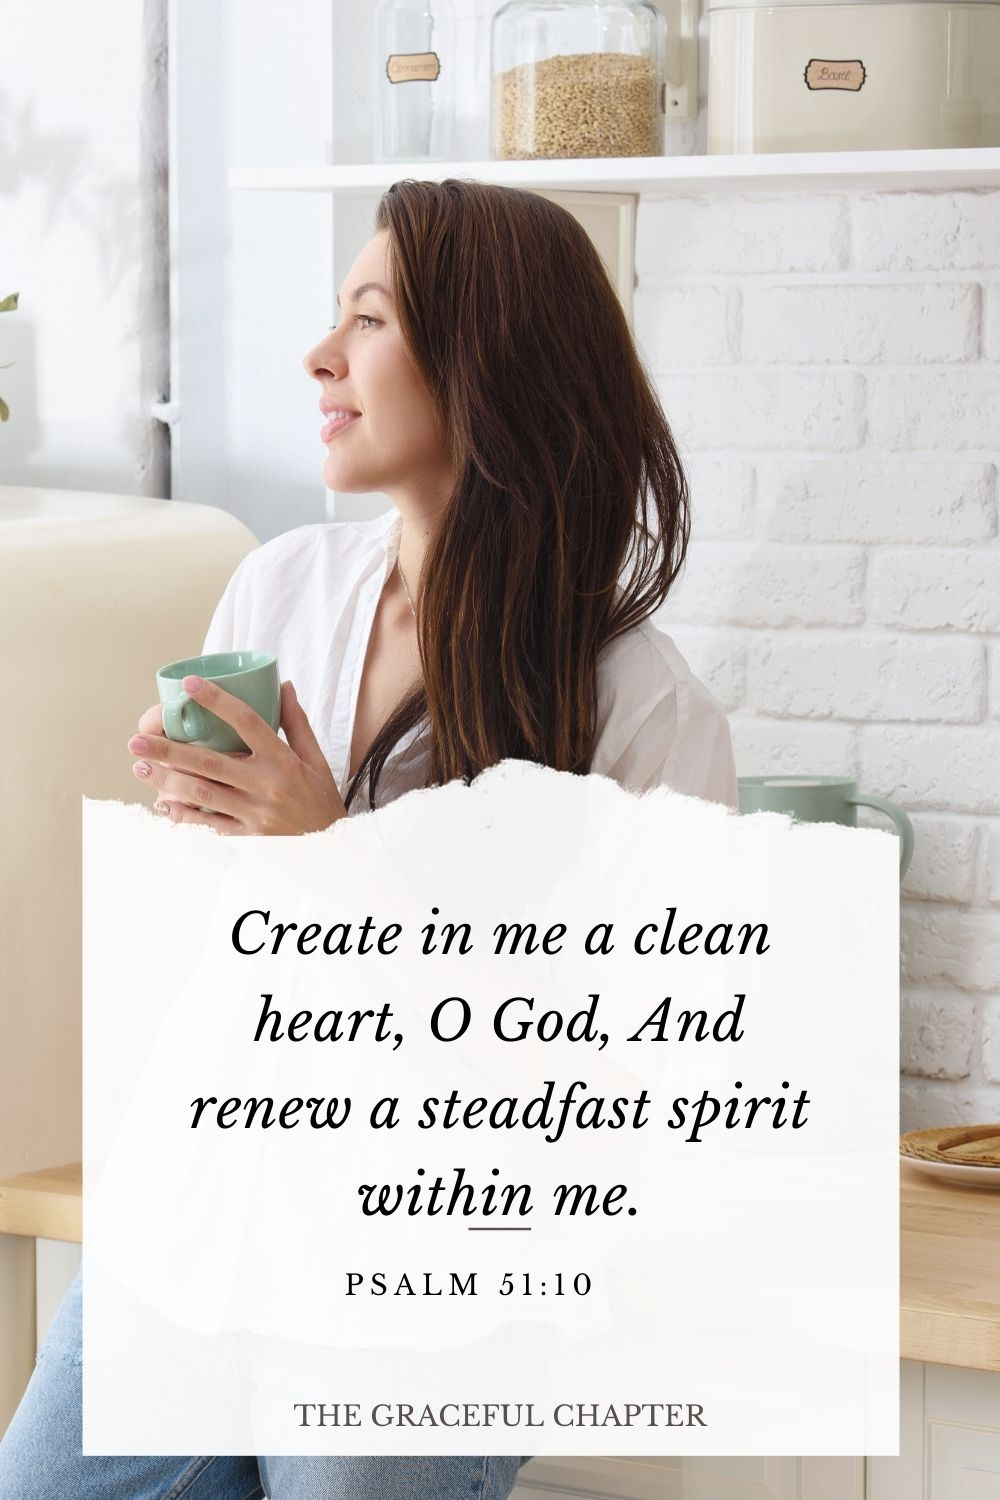 Create in me a clean heart, O God, And renew a steadfast spirit within me. Psalm 51:10